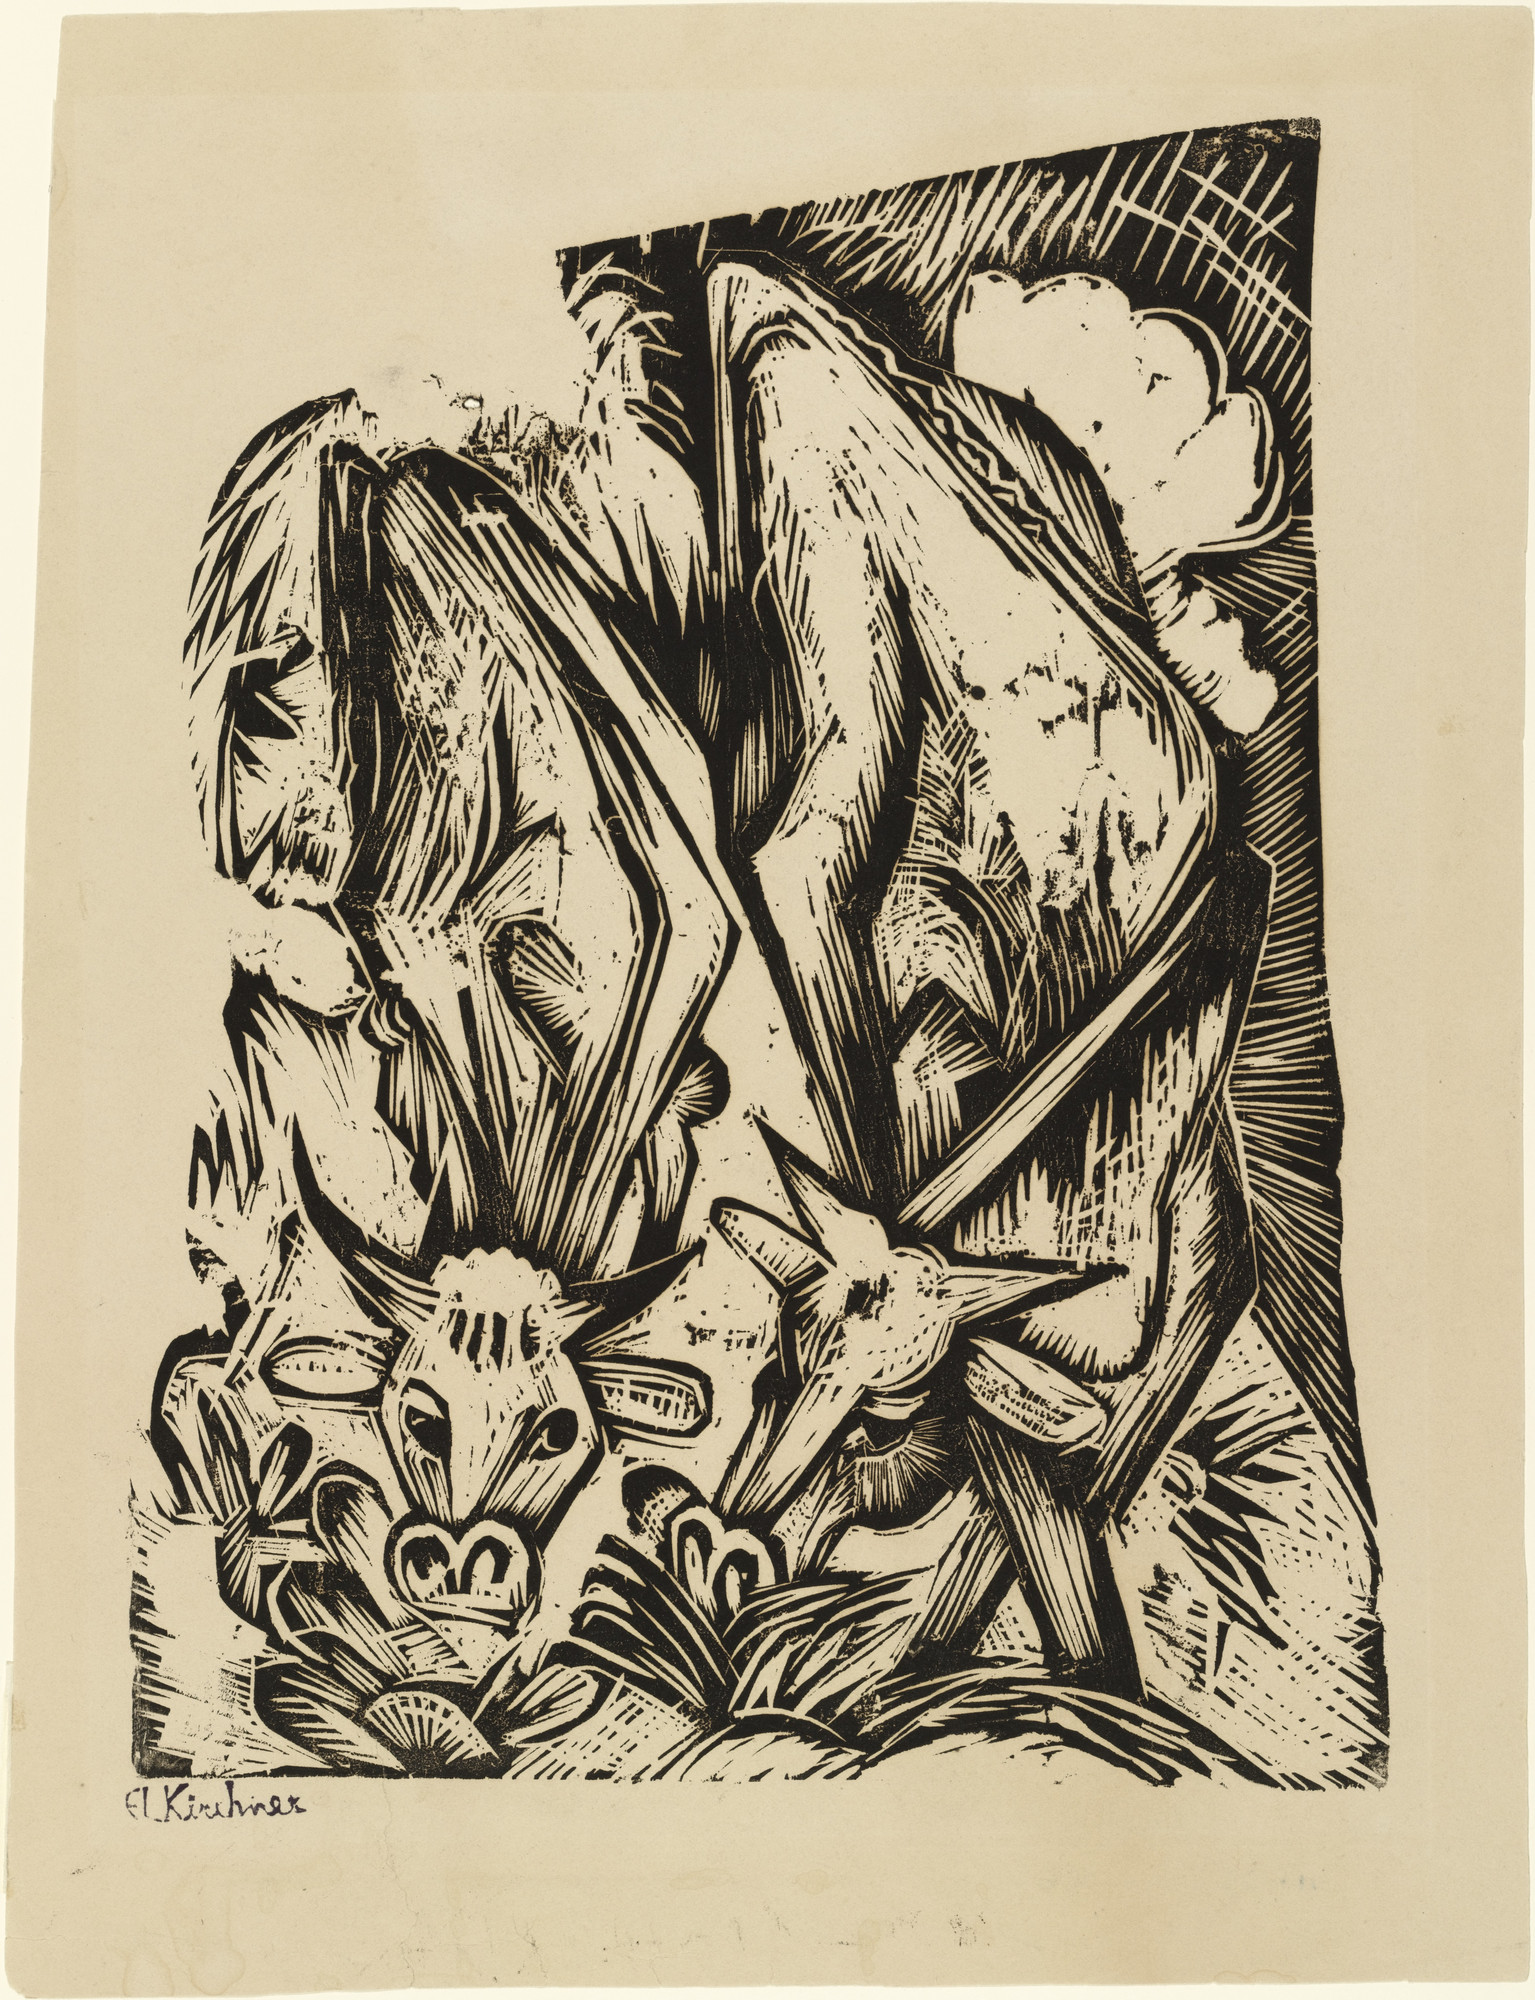 Ernst Ludwig Kirchner. Two Grazing Cows (Zwei grasende Kühe). (1918)